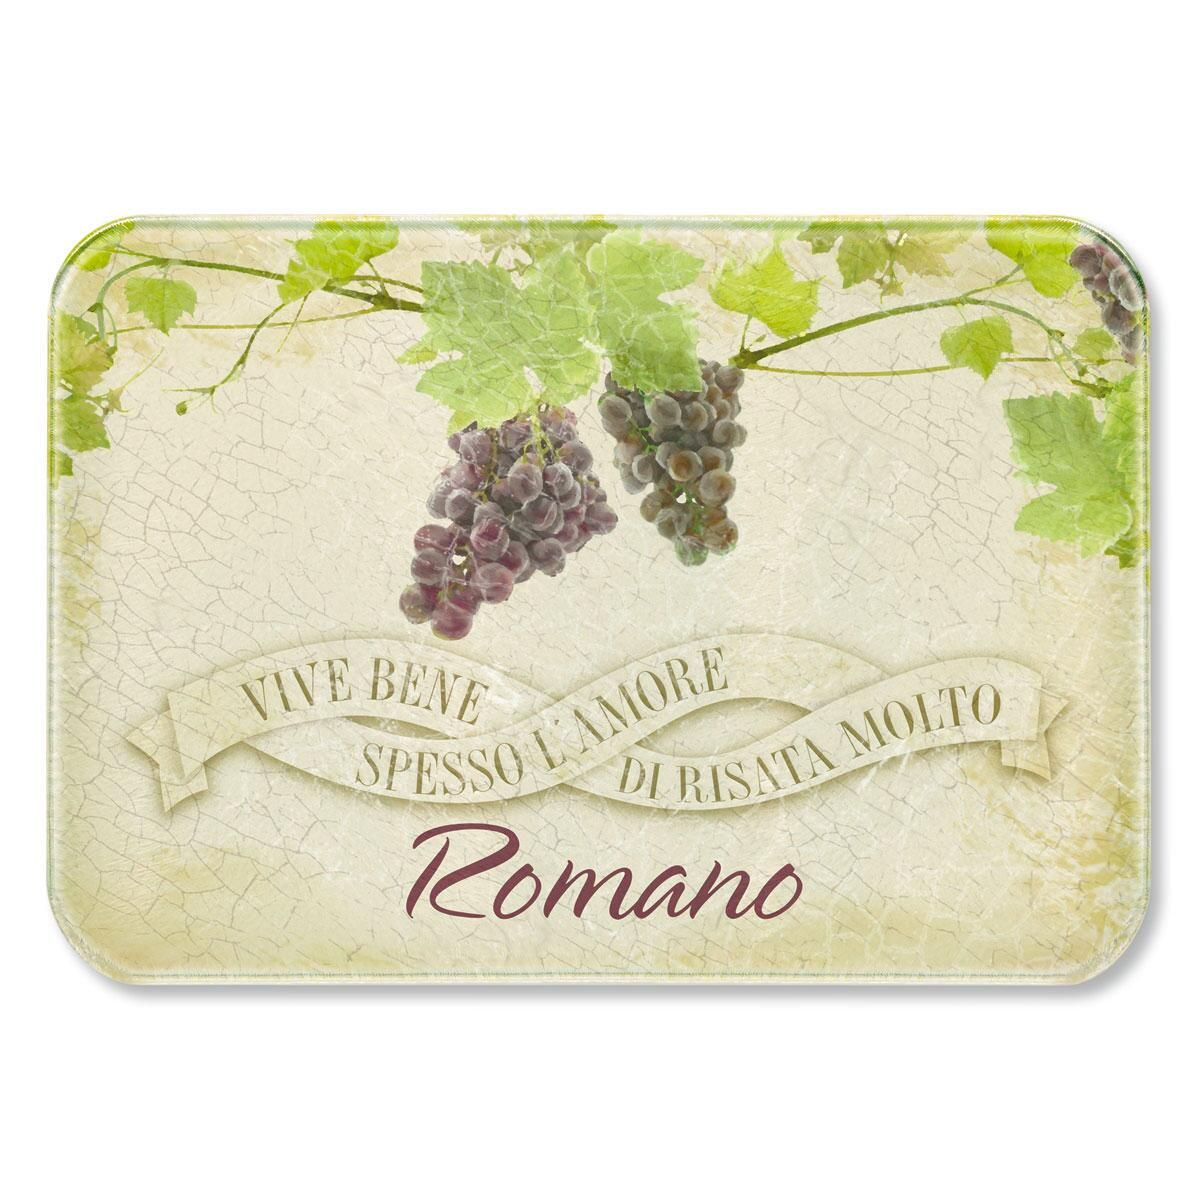 Vive Bene Personalized Custom Cutting Board